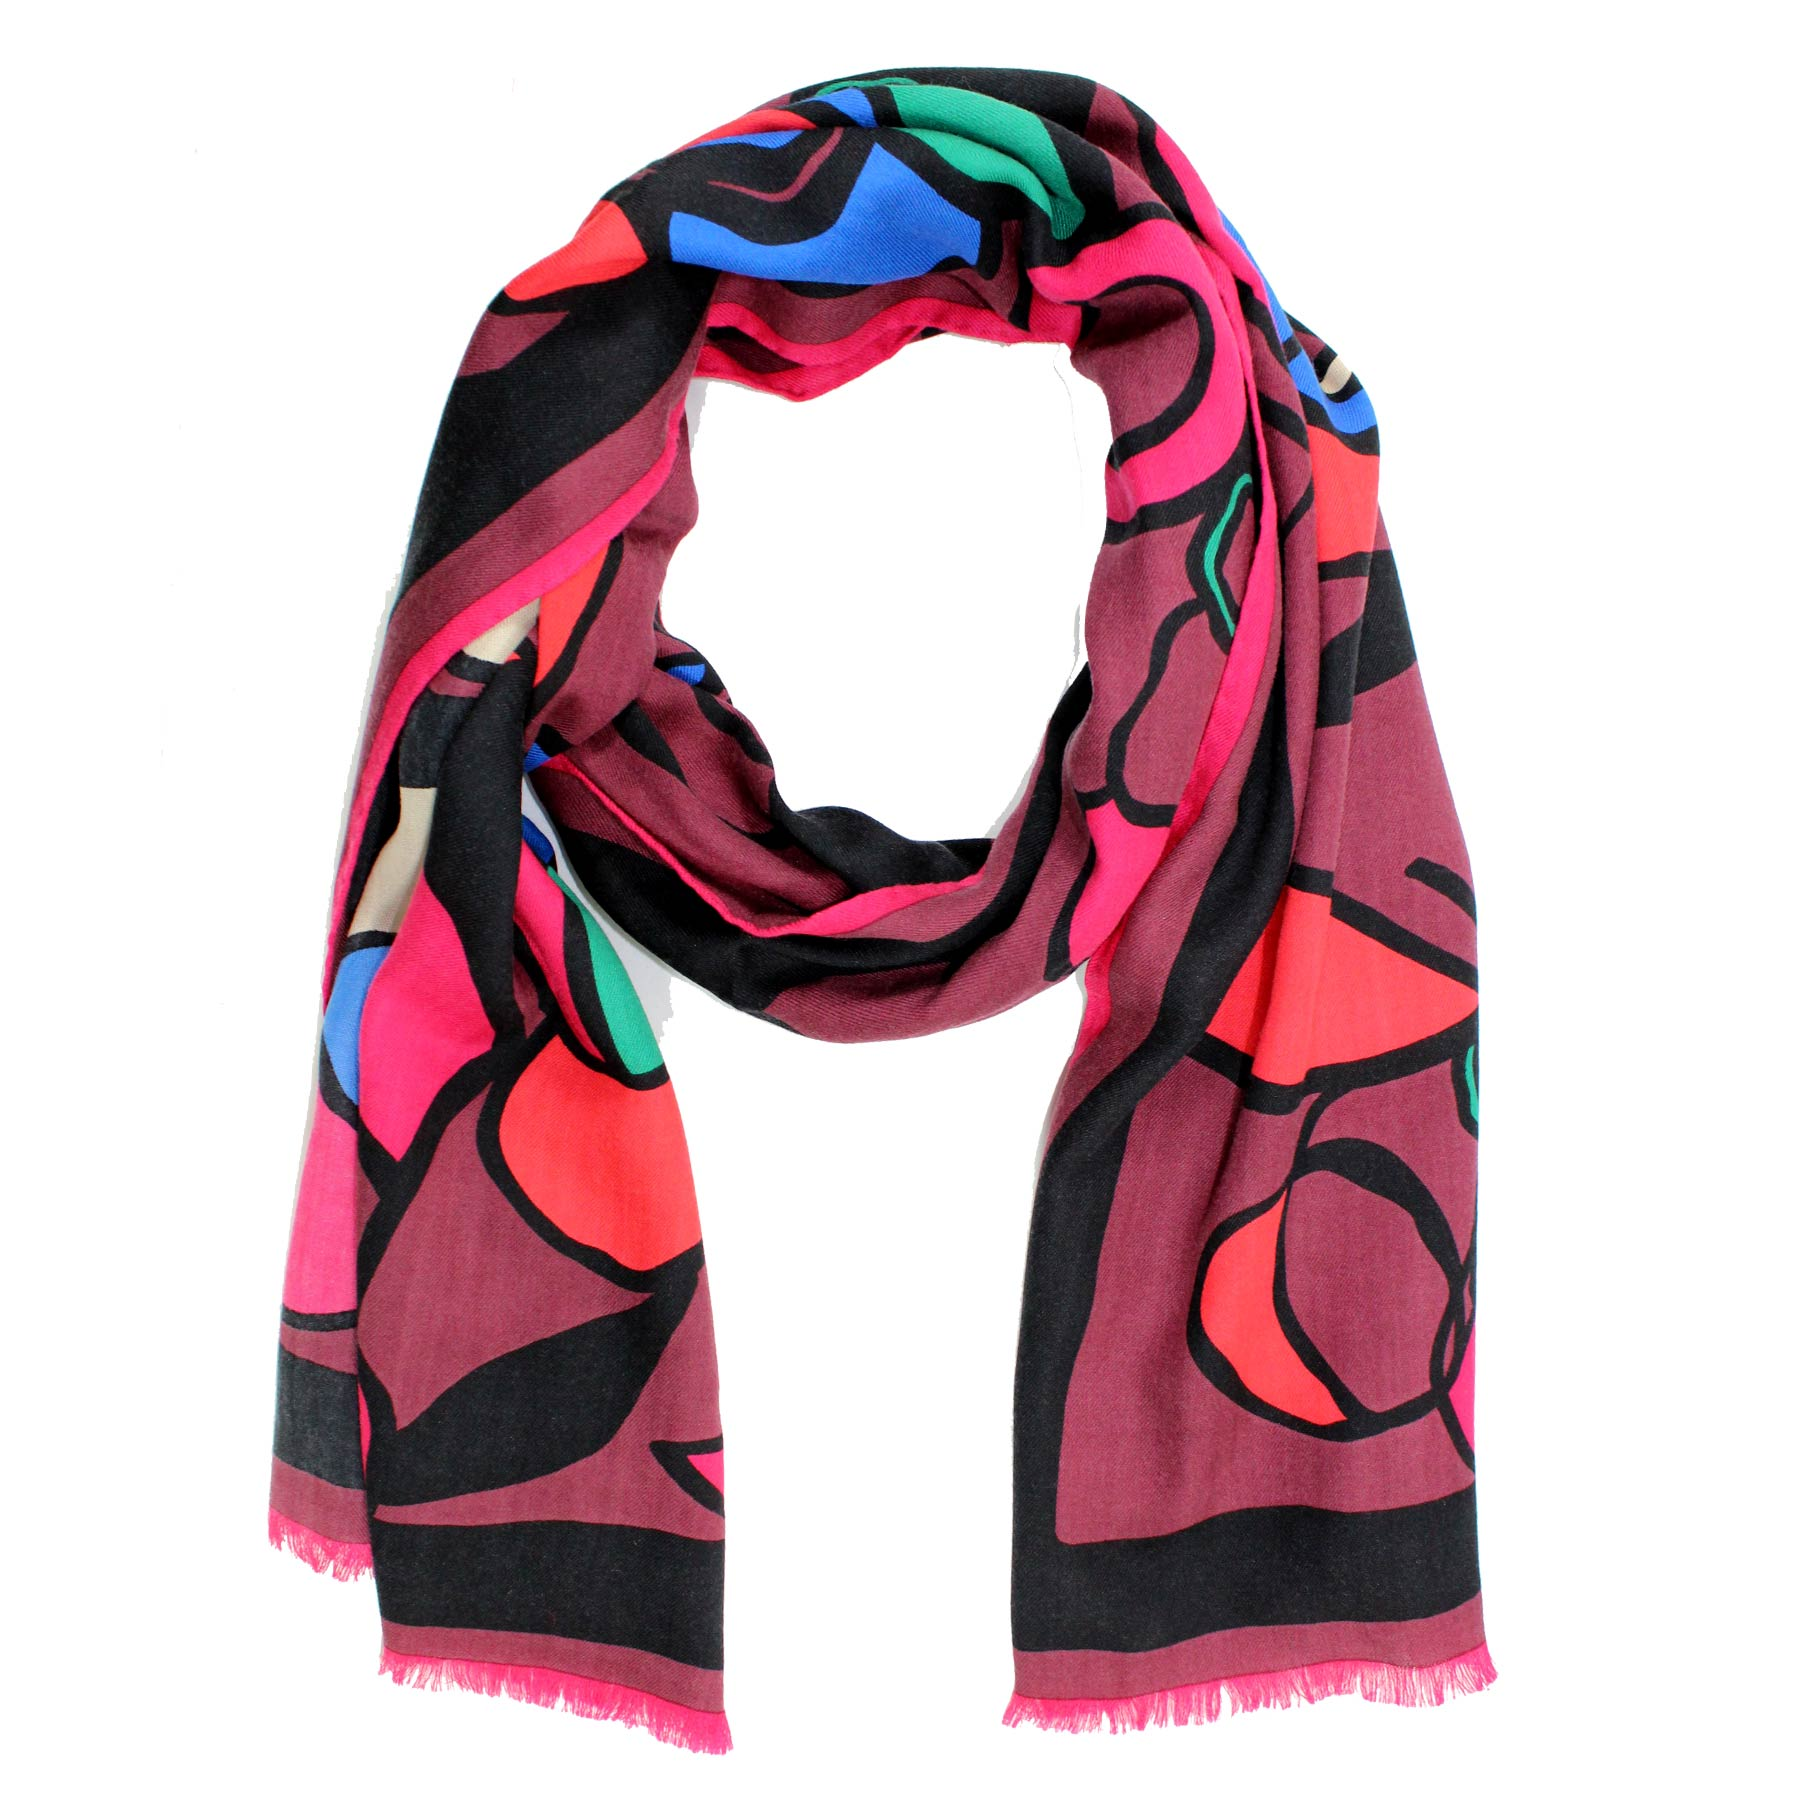 Kenzo Woman Scarf Wool Silk Shawl SALE